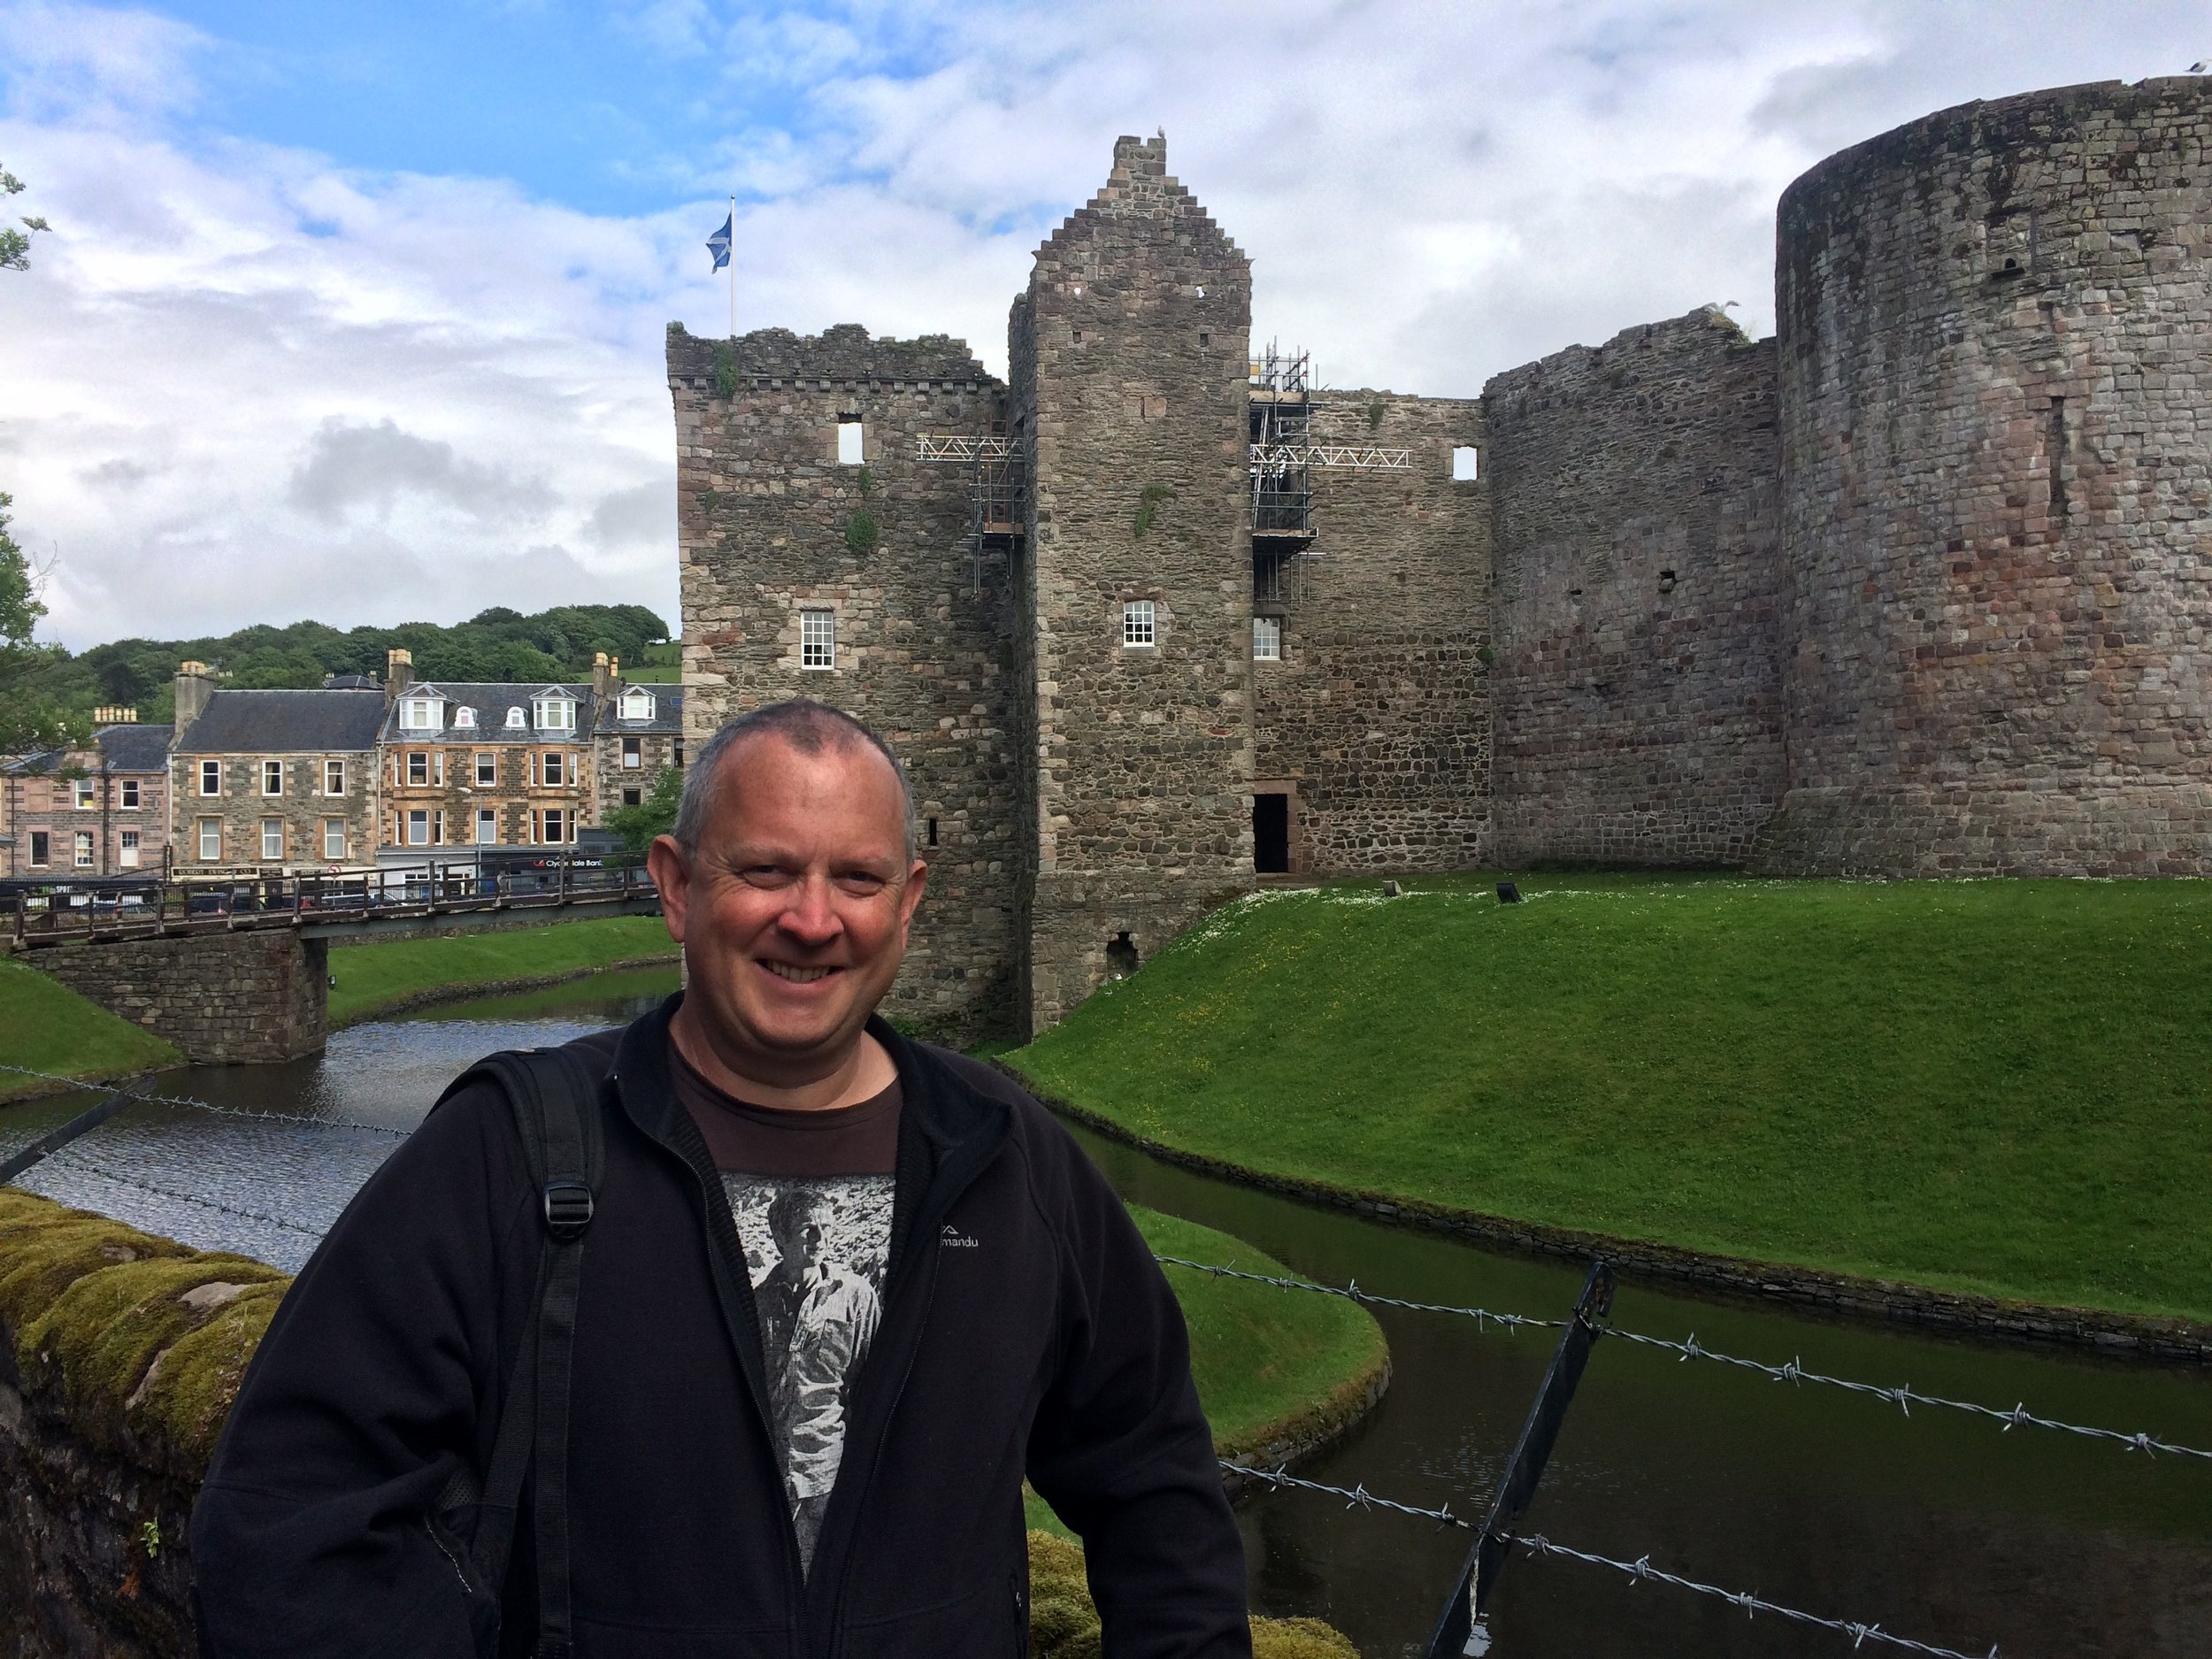 Jeff at Castle in middle of Rothesay.